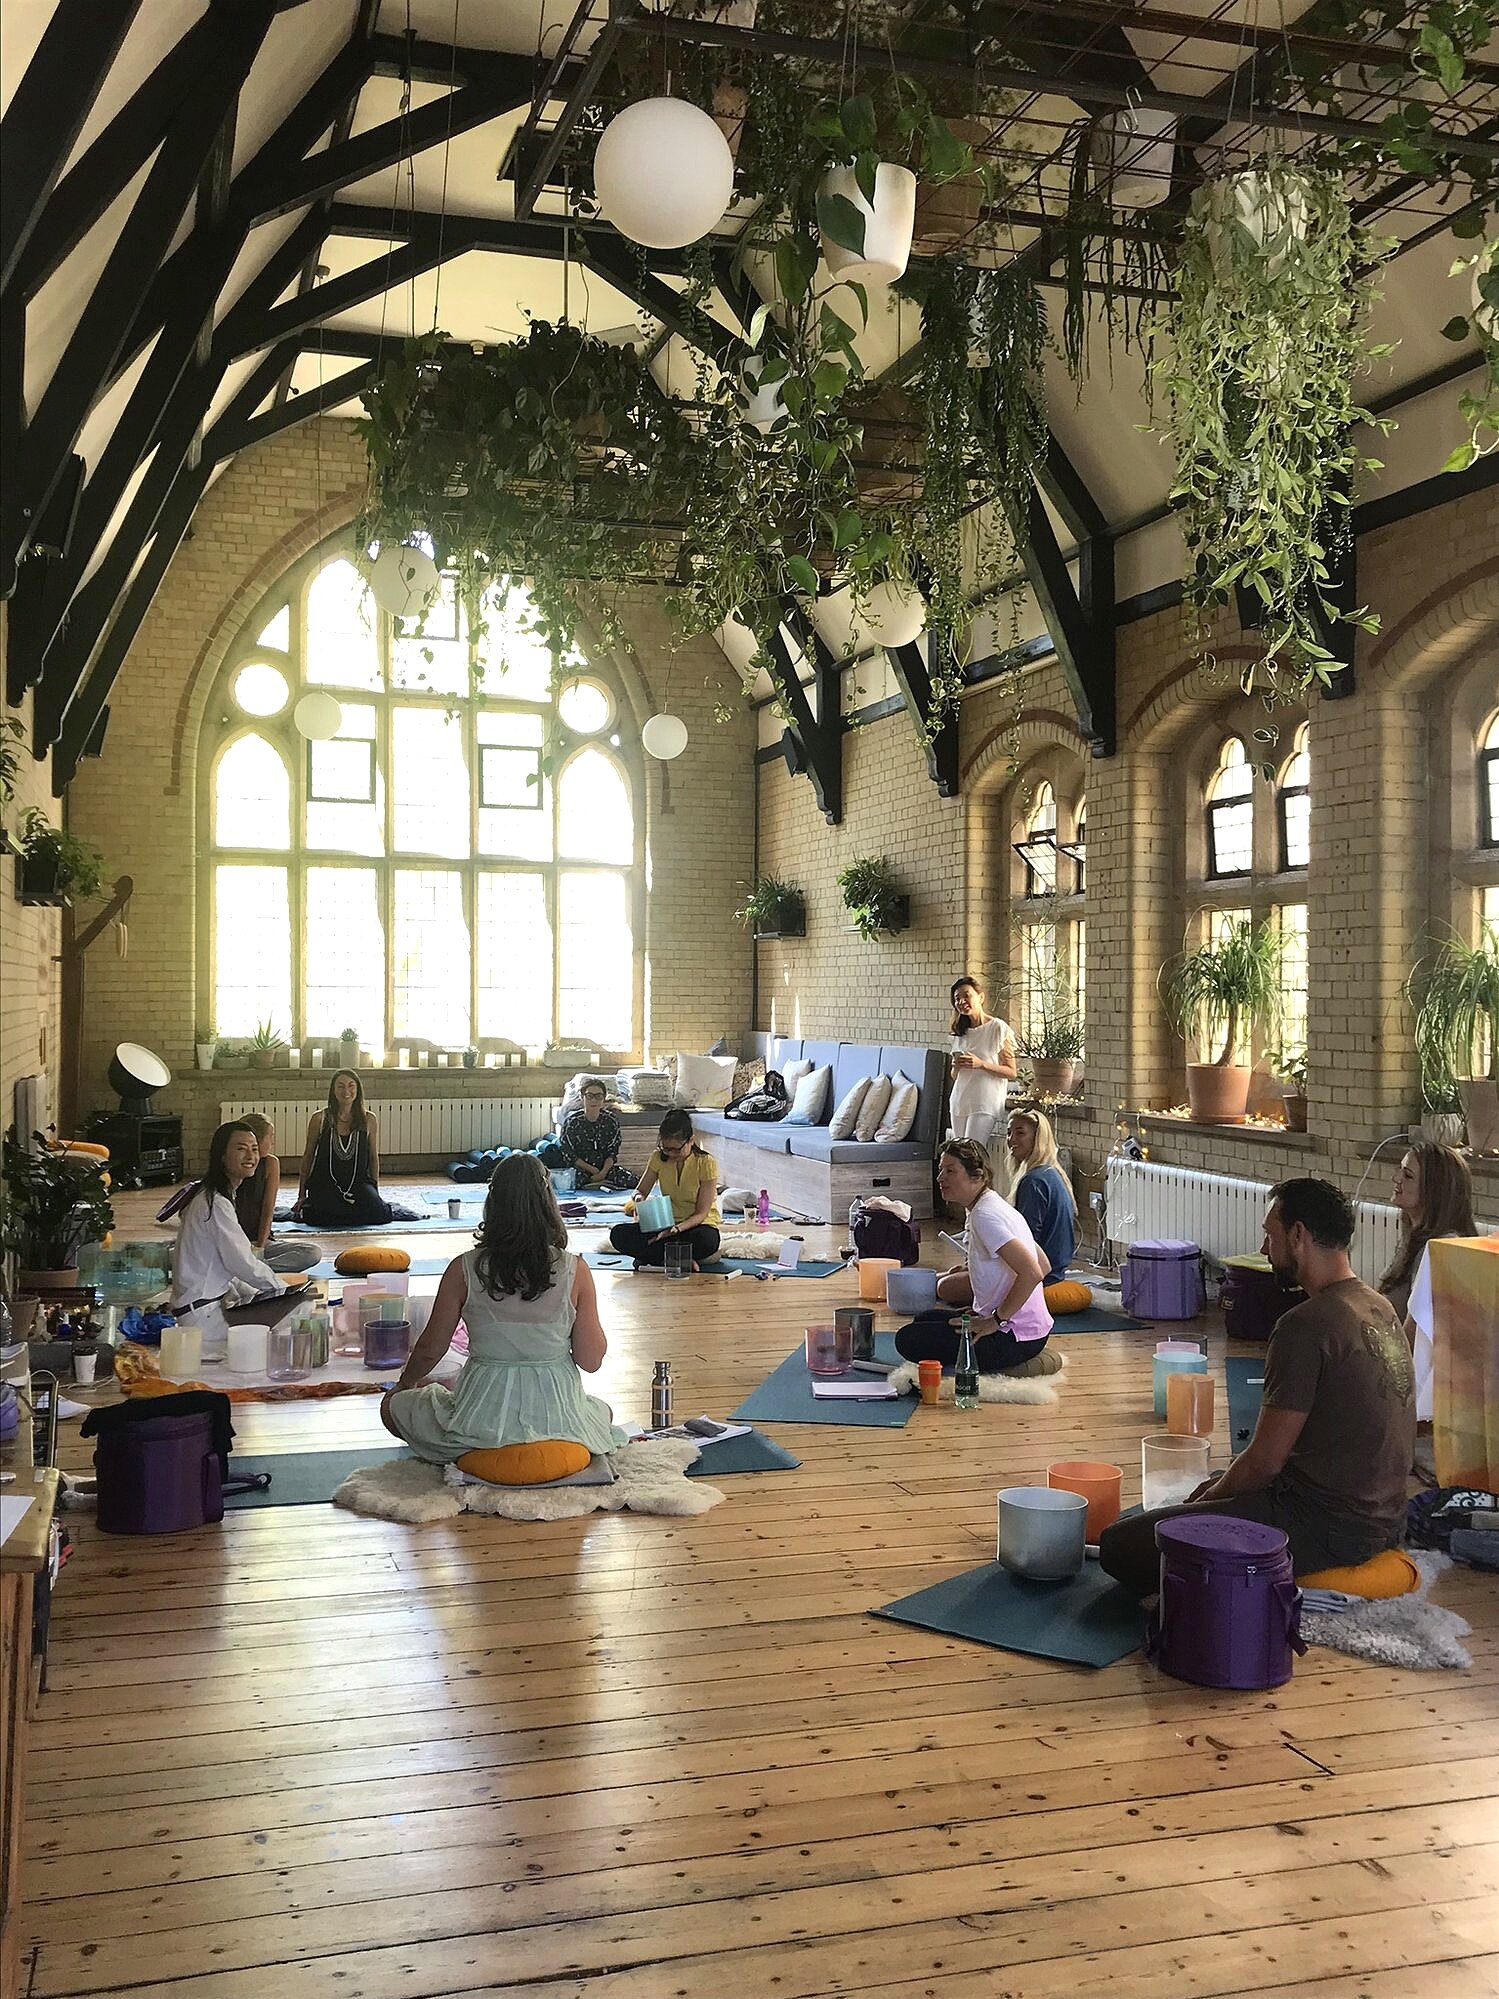 ALCHEMY CRYSTAL SINGING BOWLS LEVEL 1 TRAINING - A two day course to learn about the art of sound healing and alchemy crystal singing bowls.> Level 1 Training 2019> Level 1 Training 2020